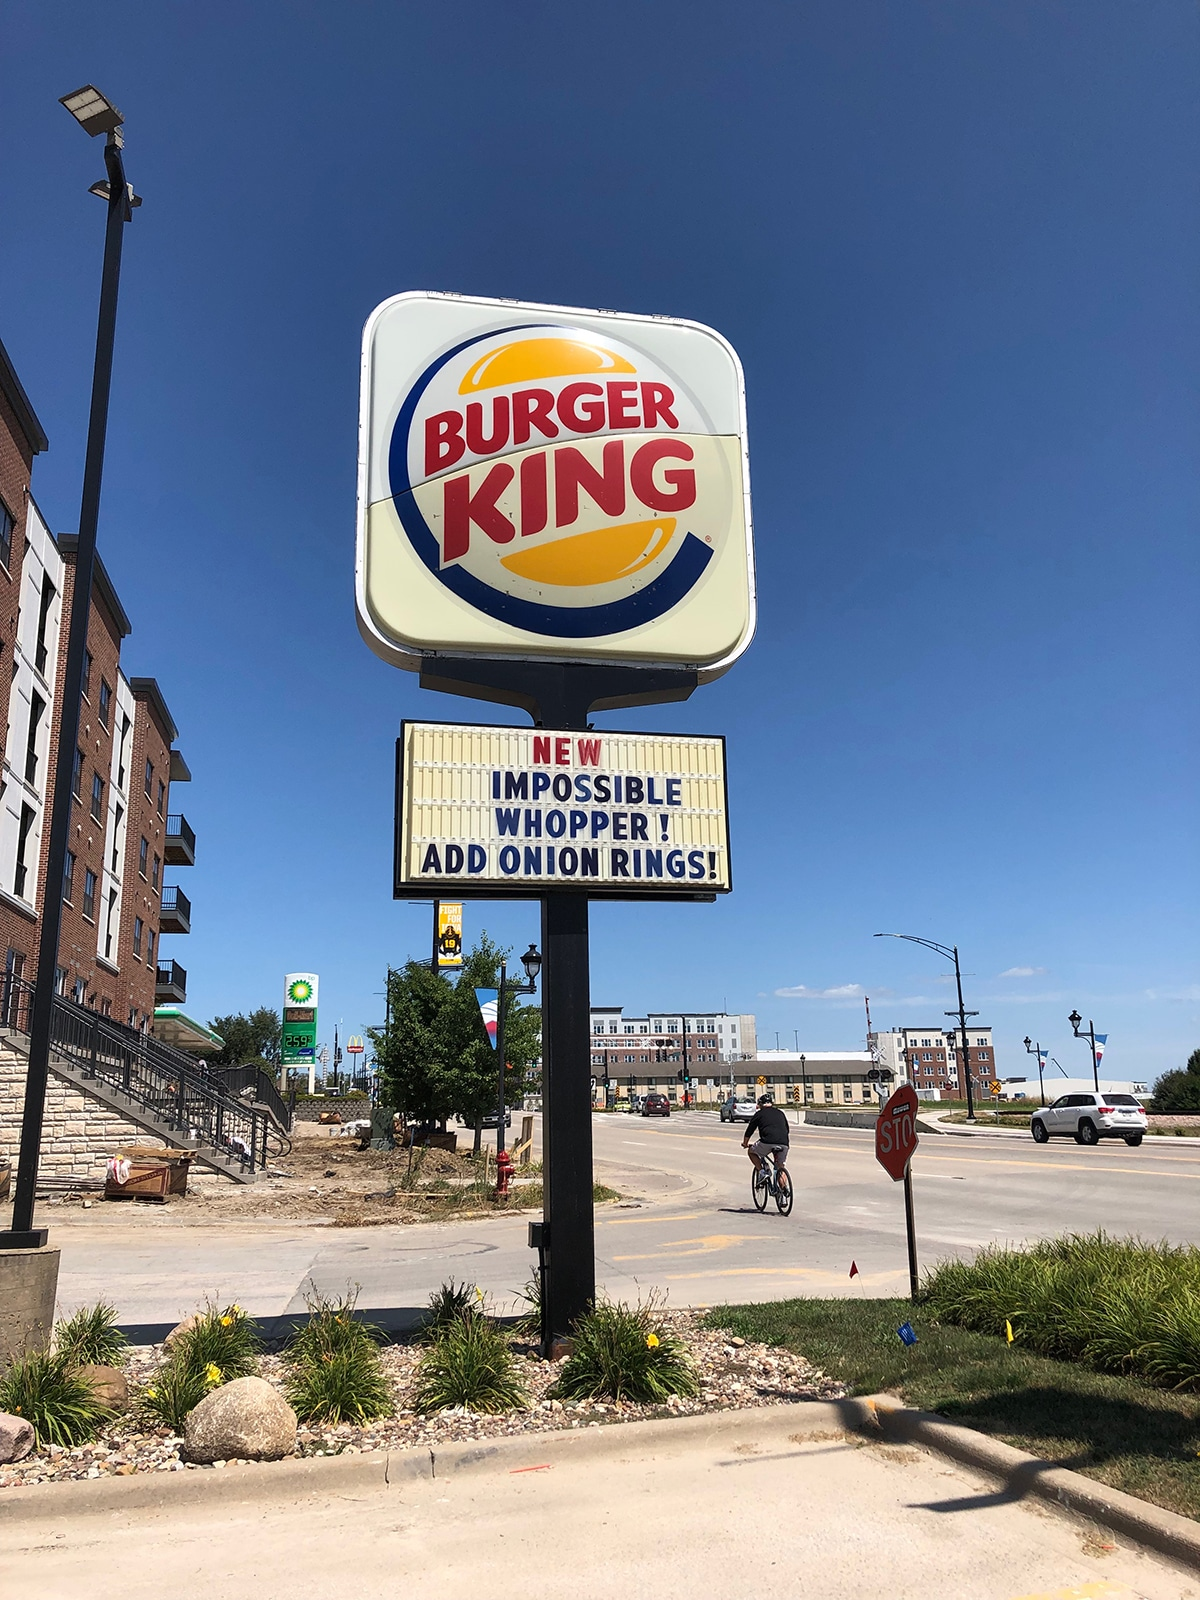 Burger King sign advertising Impossible Whopper.